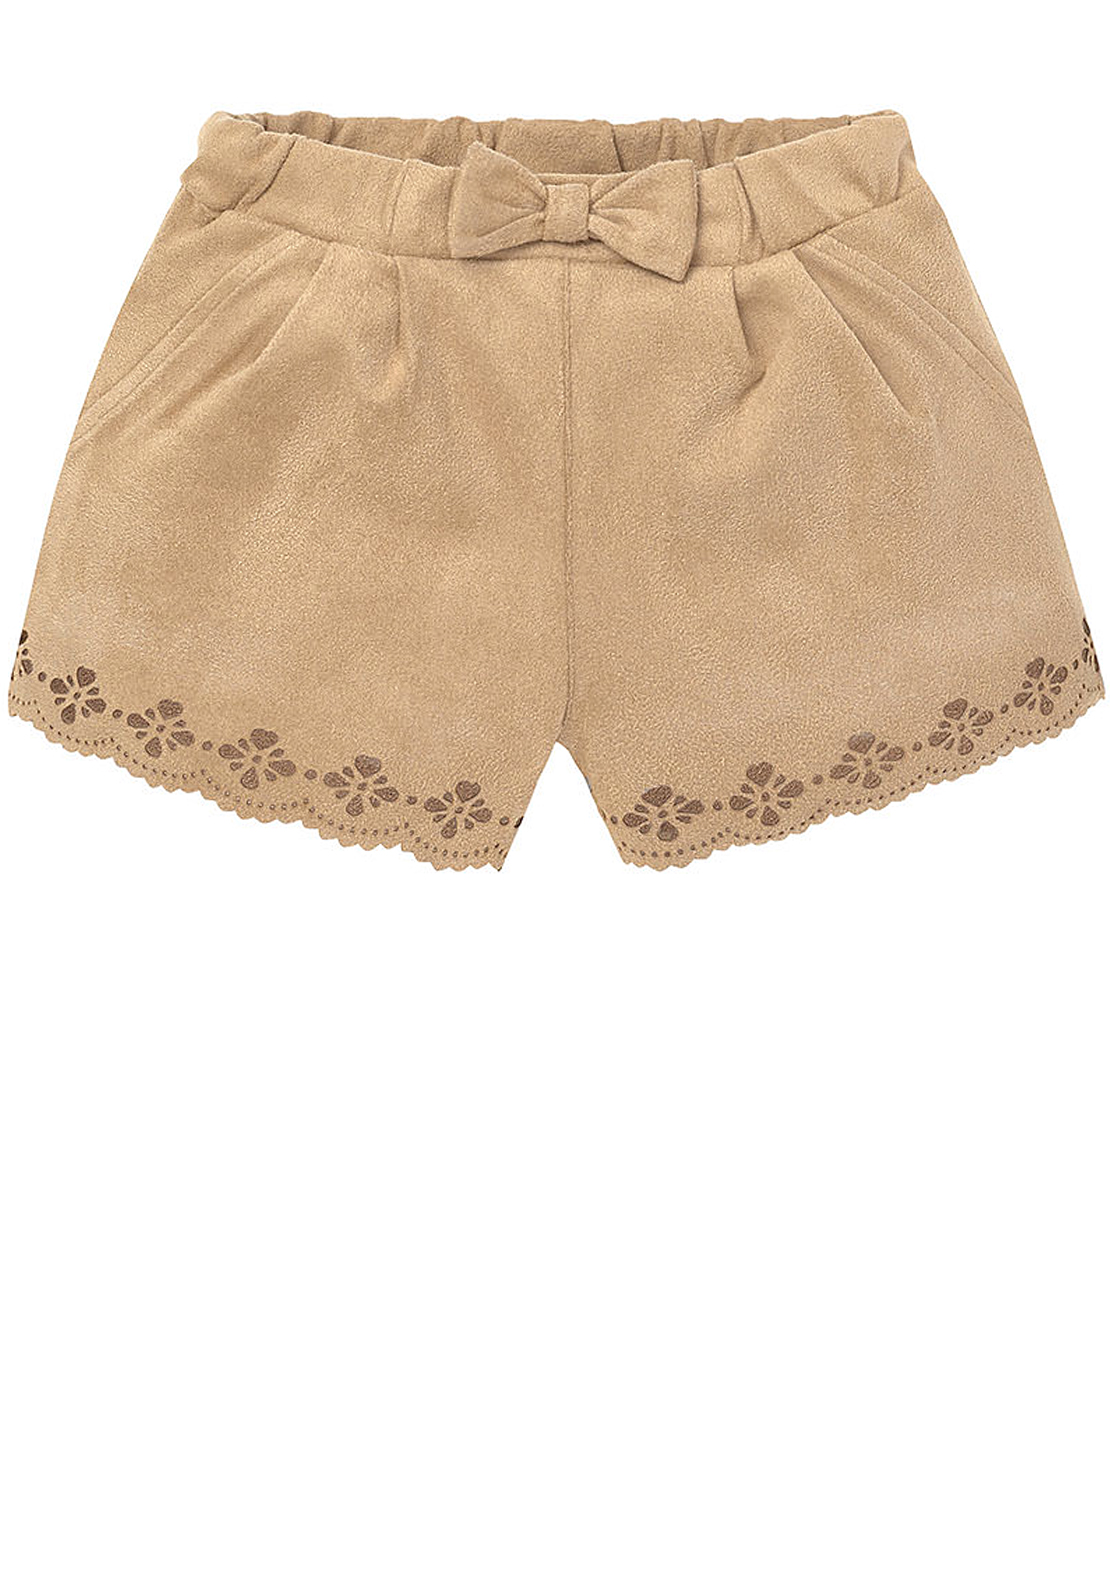 Mayoral Baby Girls Faux Suede Cut Out Shorts, Tan